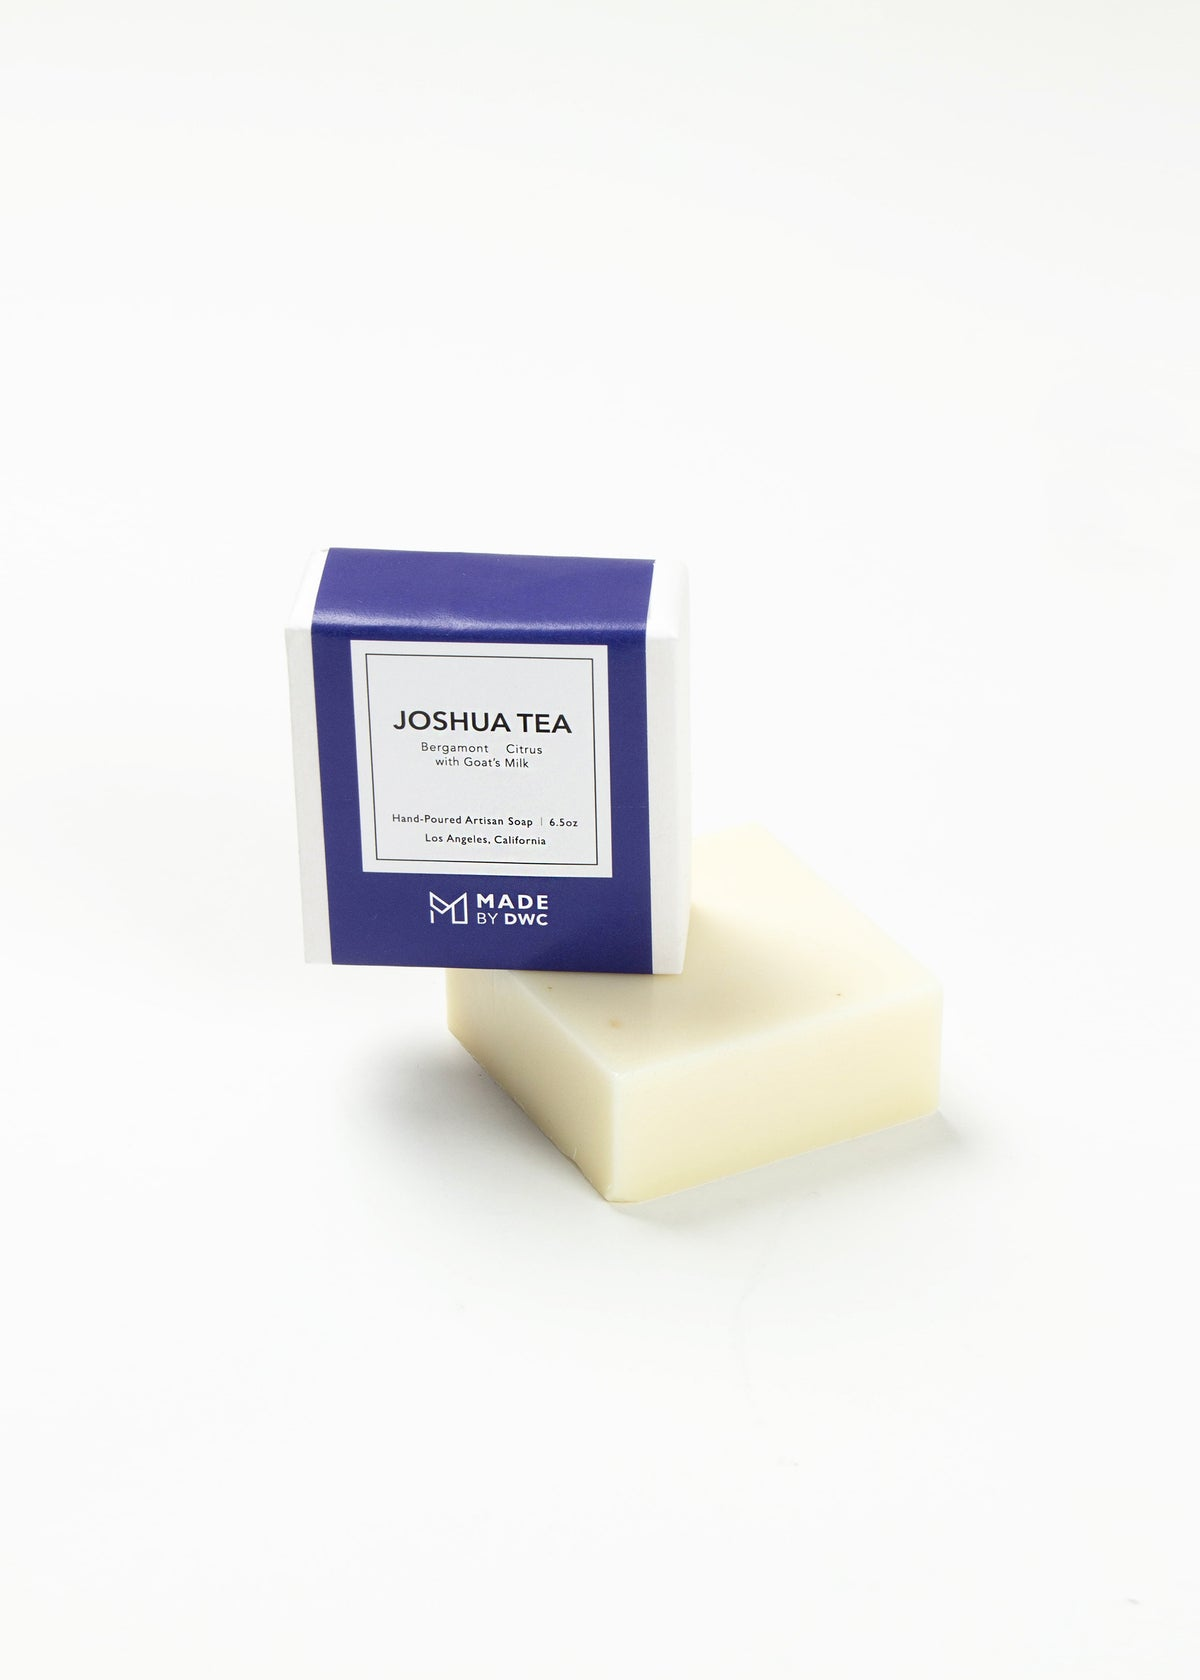 Joshua Tea Soap